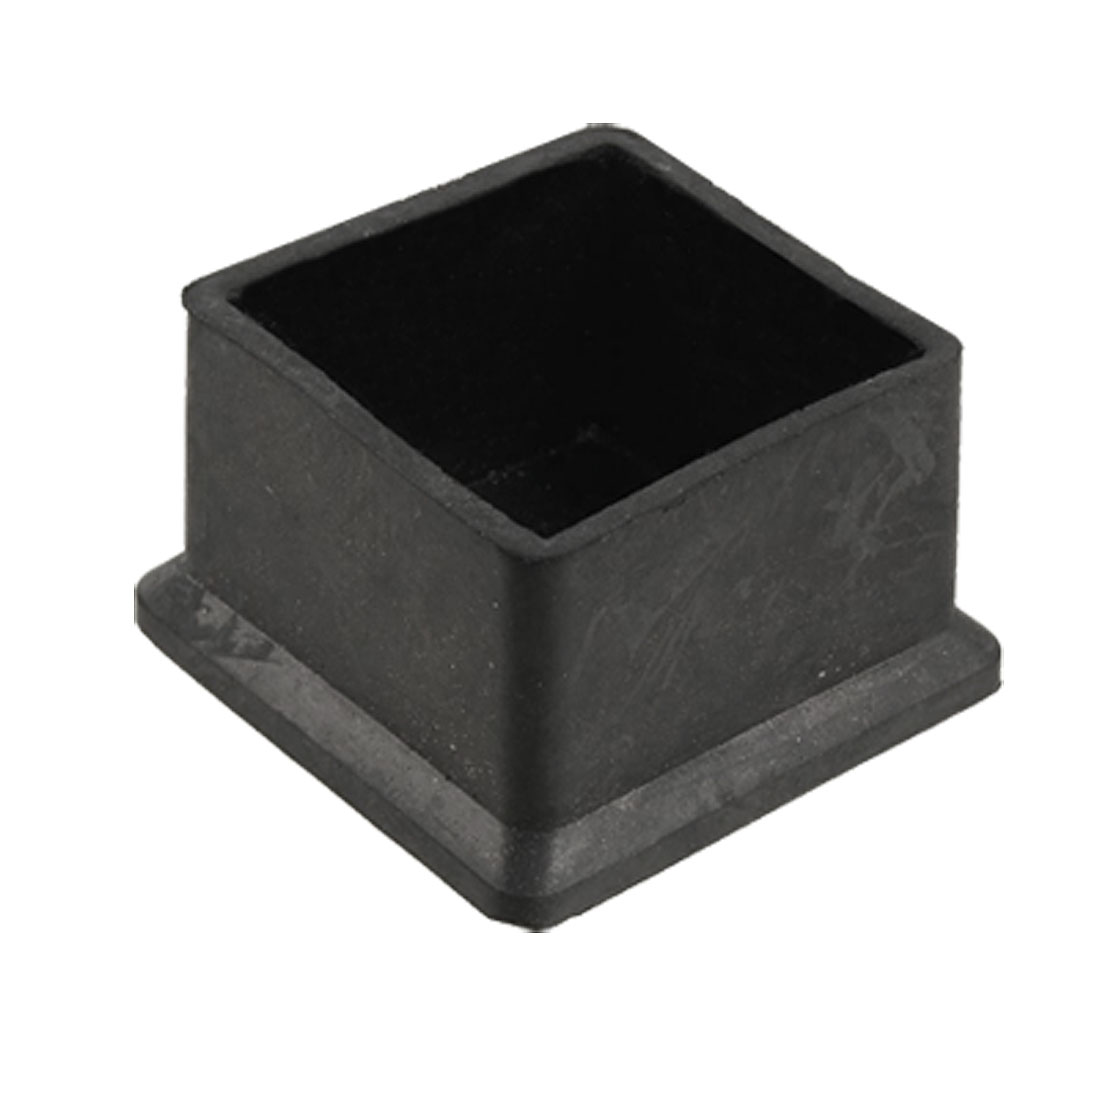 45mm x 45mm Black Square Rubber Foot for Table Desk Leg